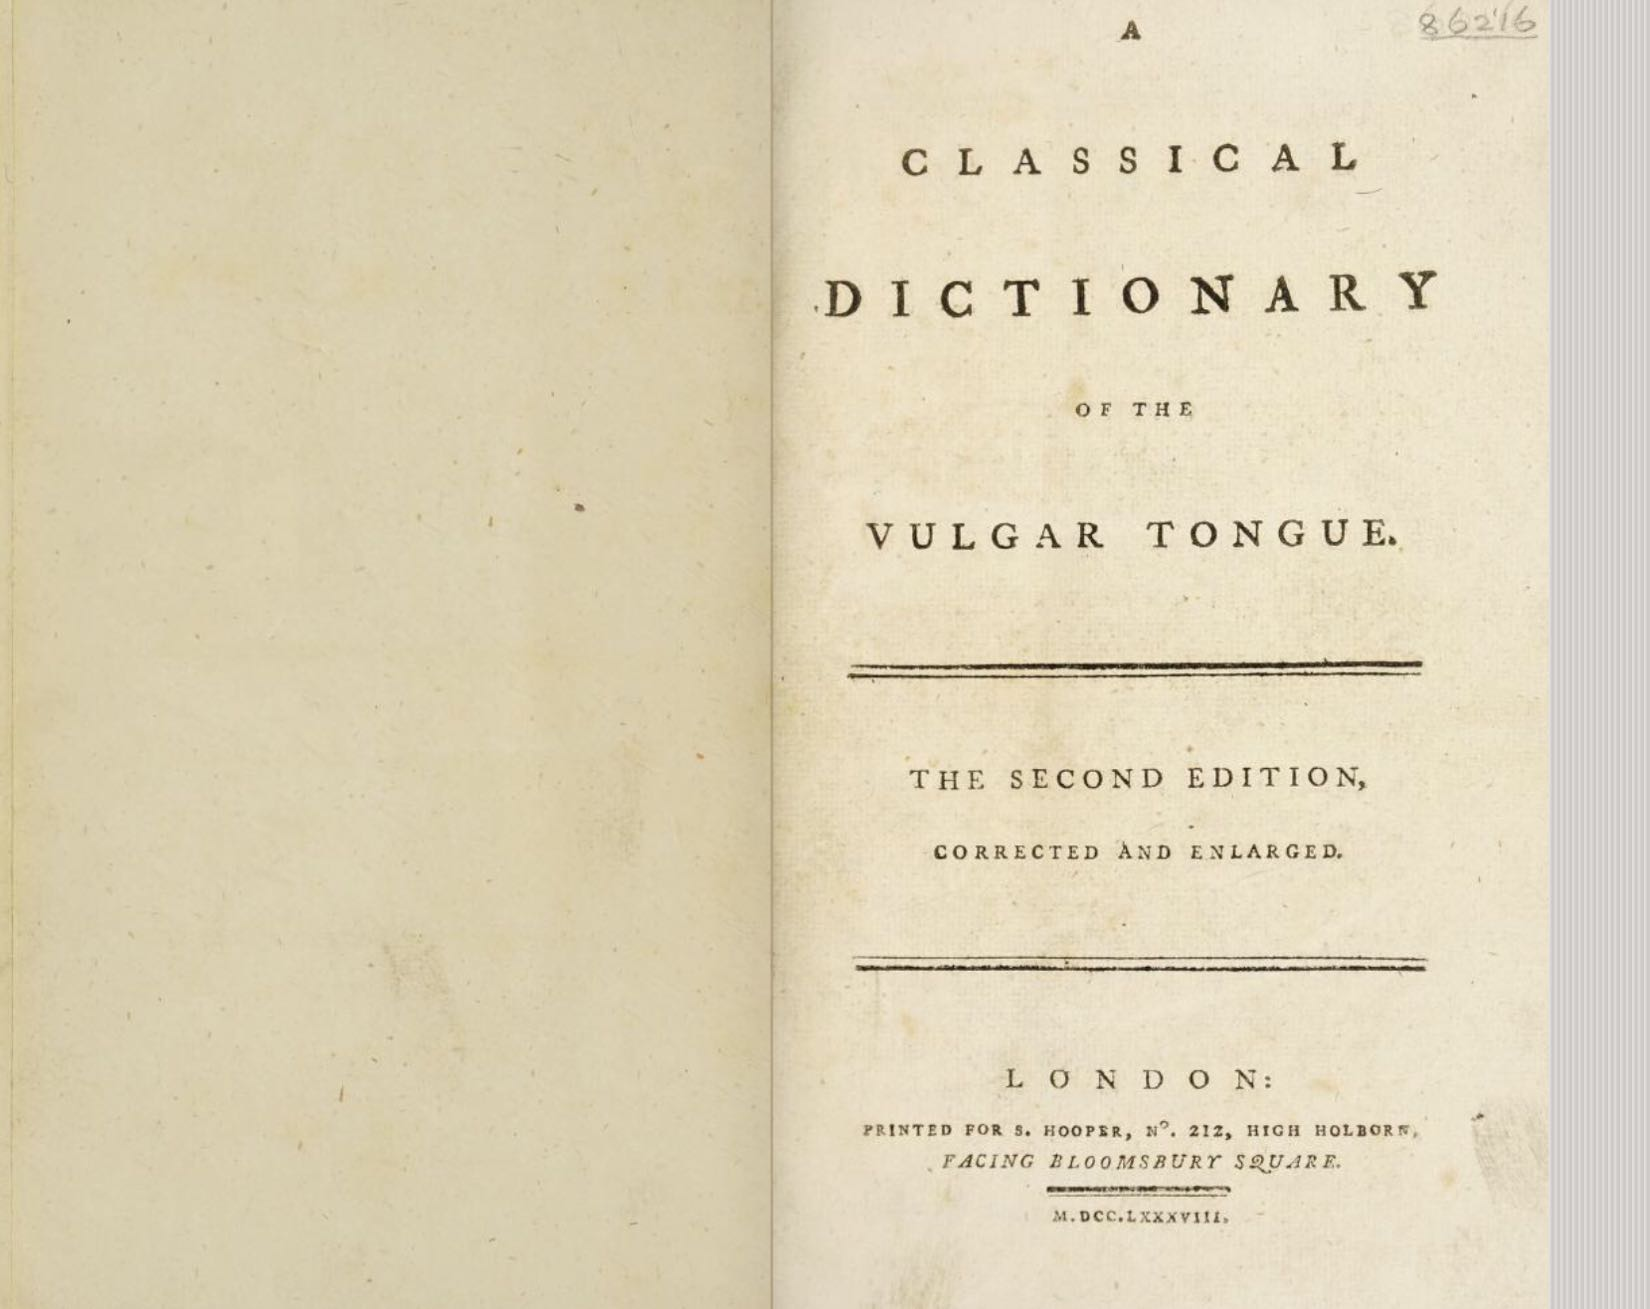 quality-linkage-public-domain-review-classical-dictionary-of-the-vulgar-tongue